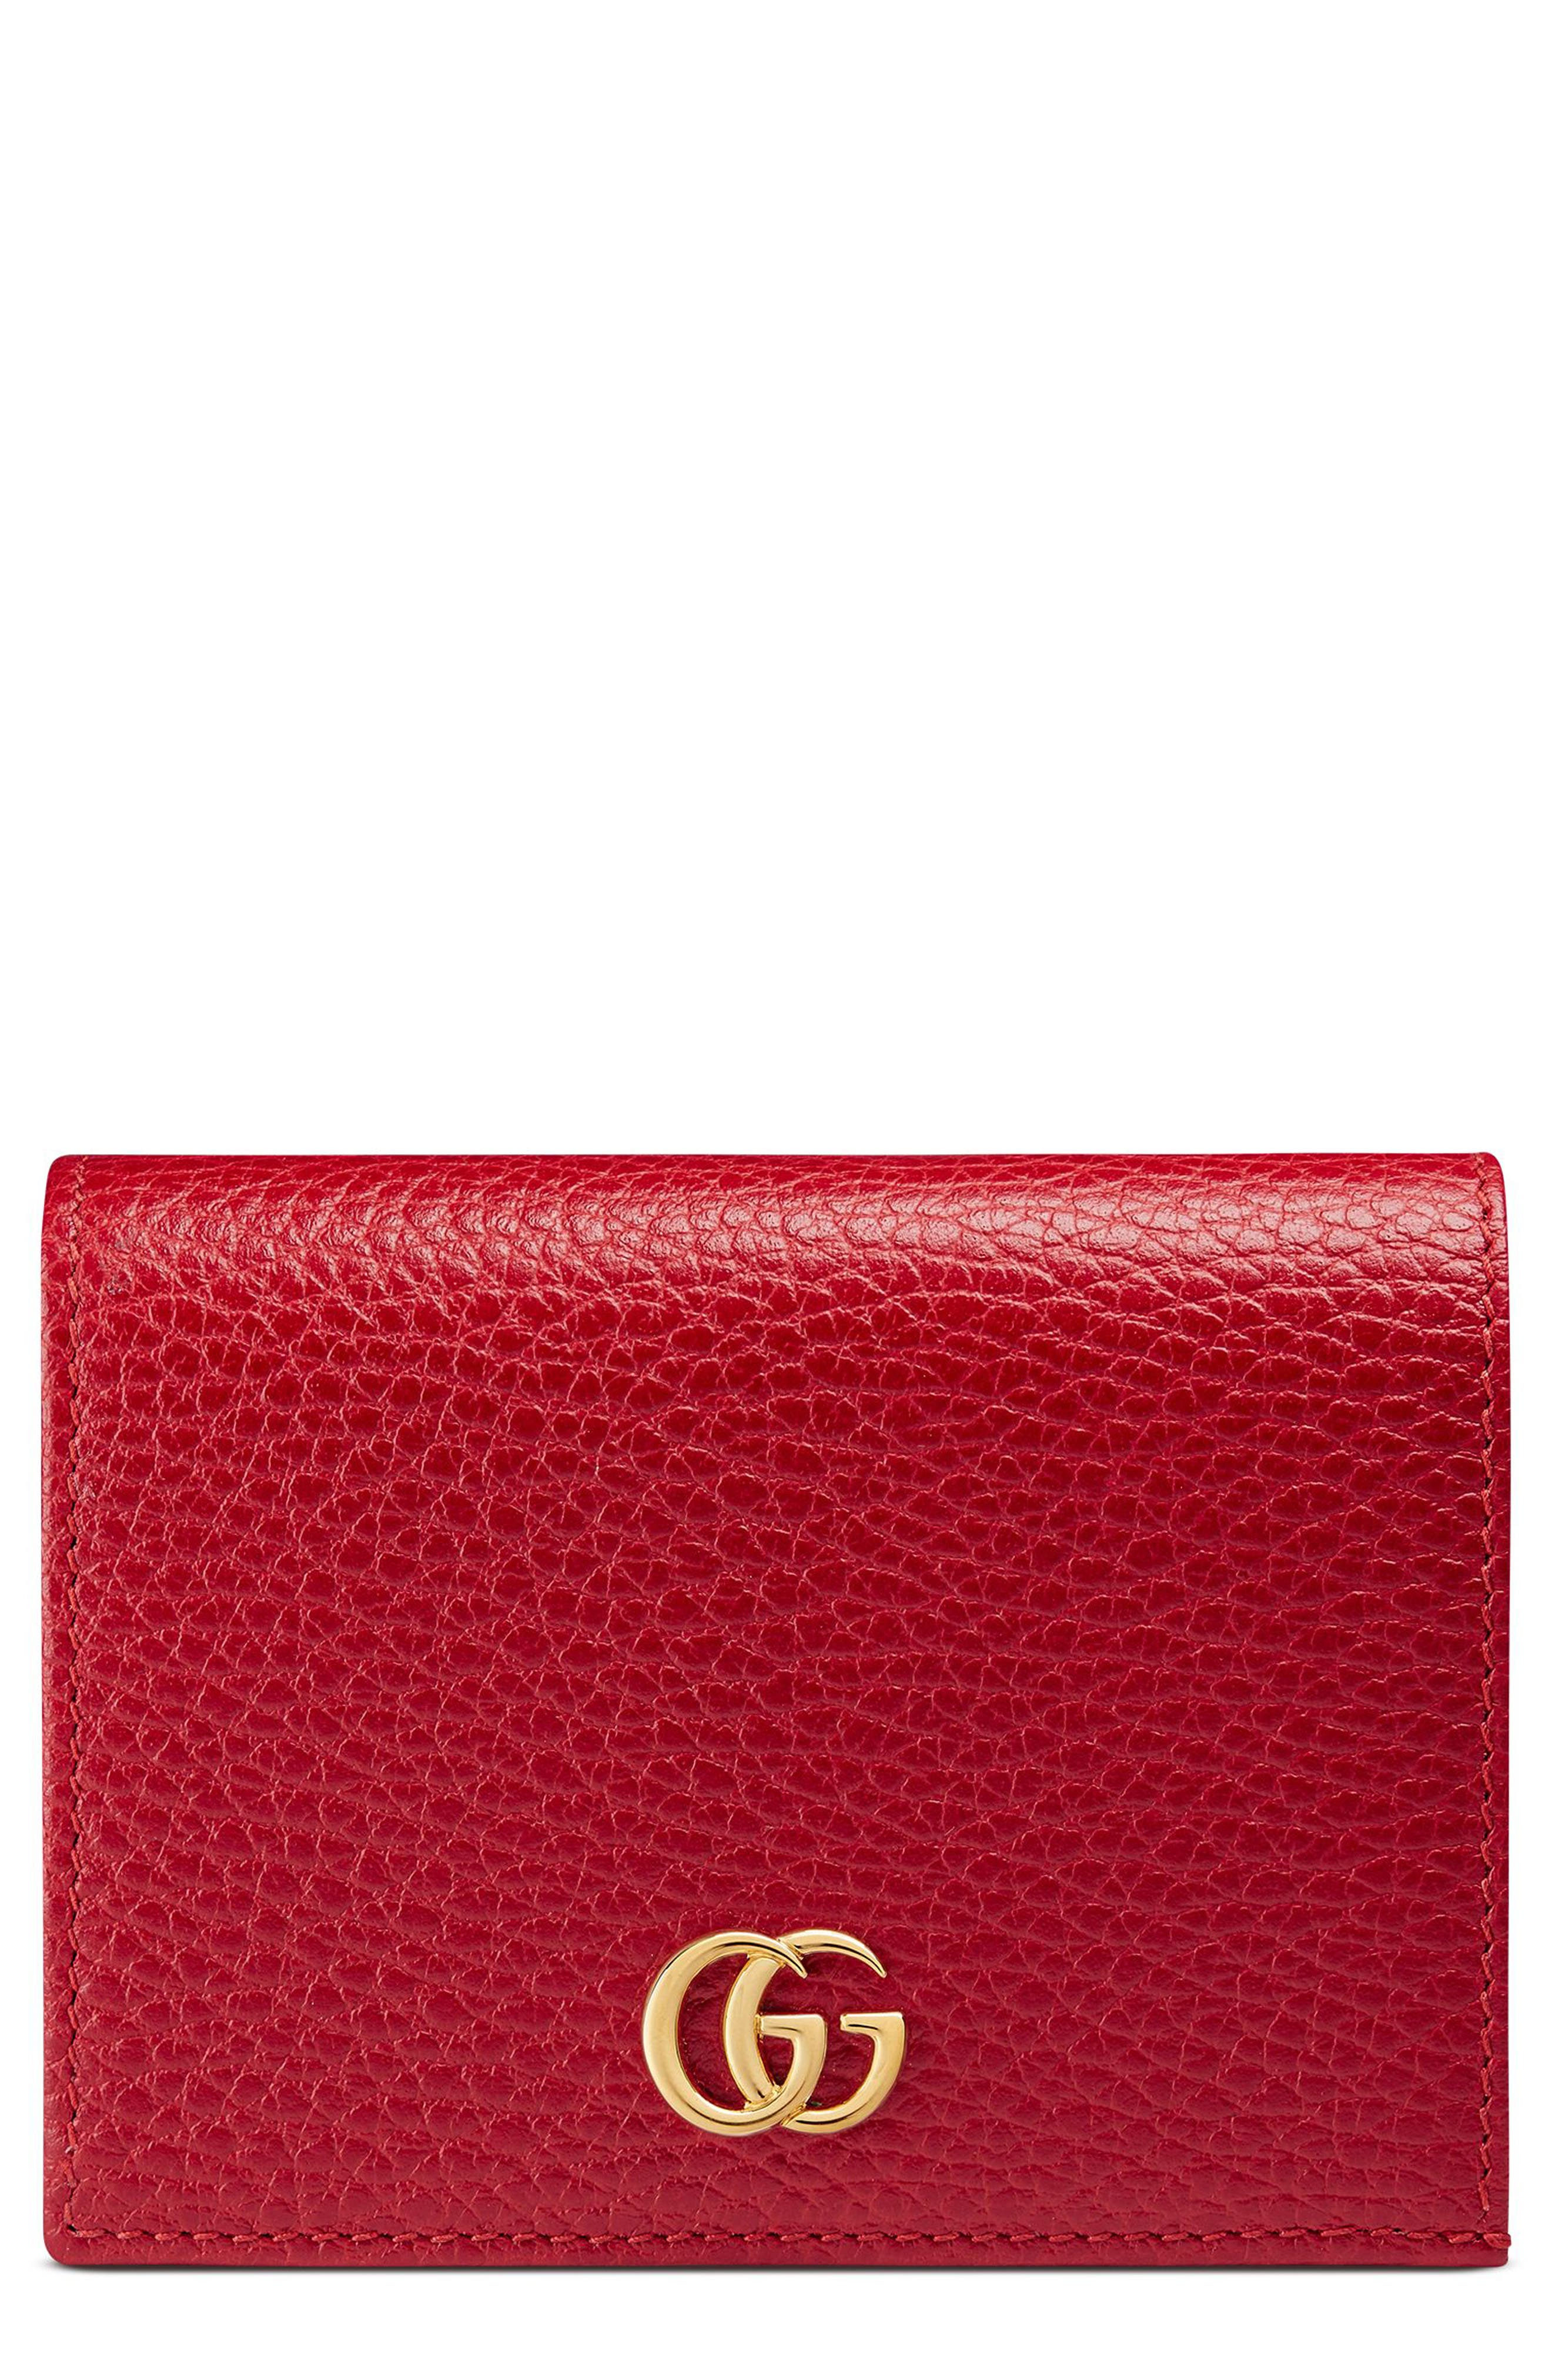 Petite Marmont Leather Card Case,                             Main thumbnail 1, color,                             Hibiscus Red